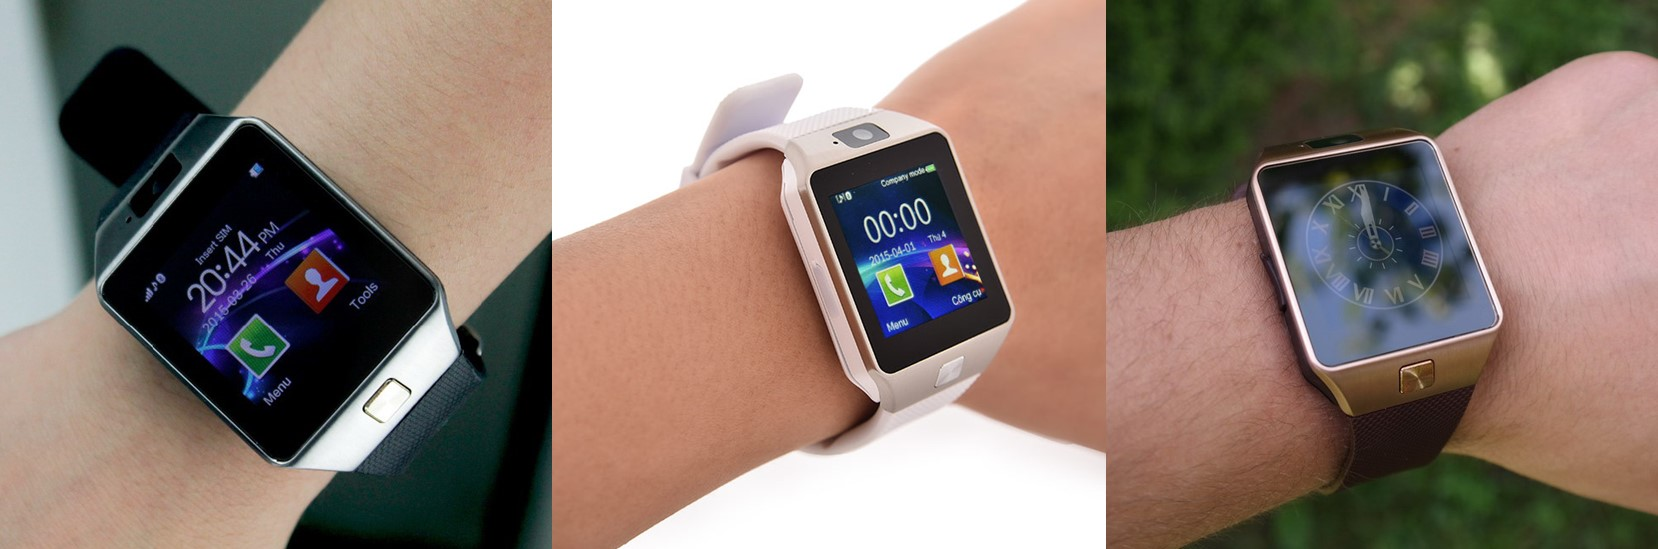 smart-watch-dz09_hands.jpg